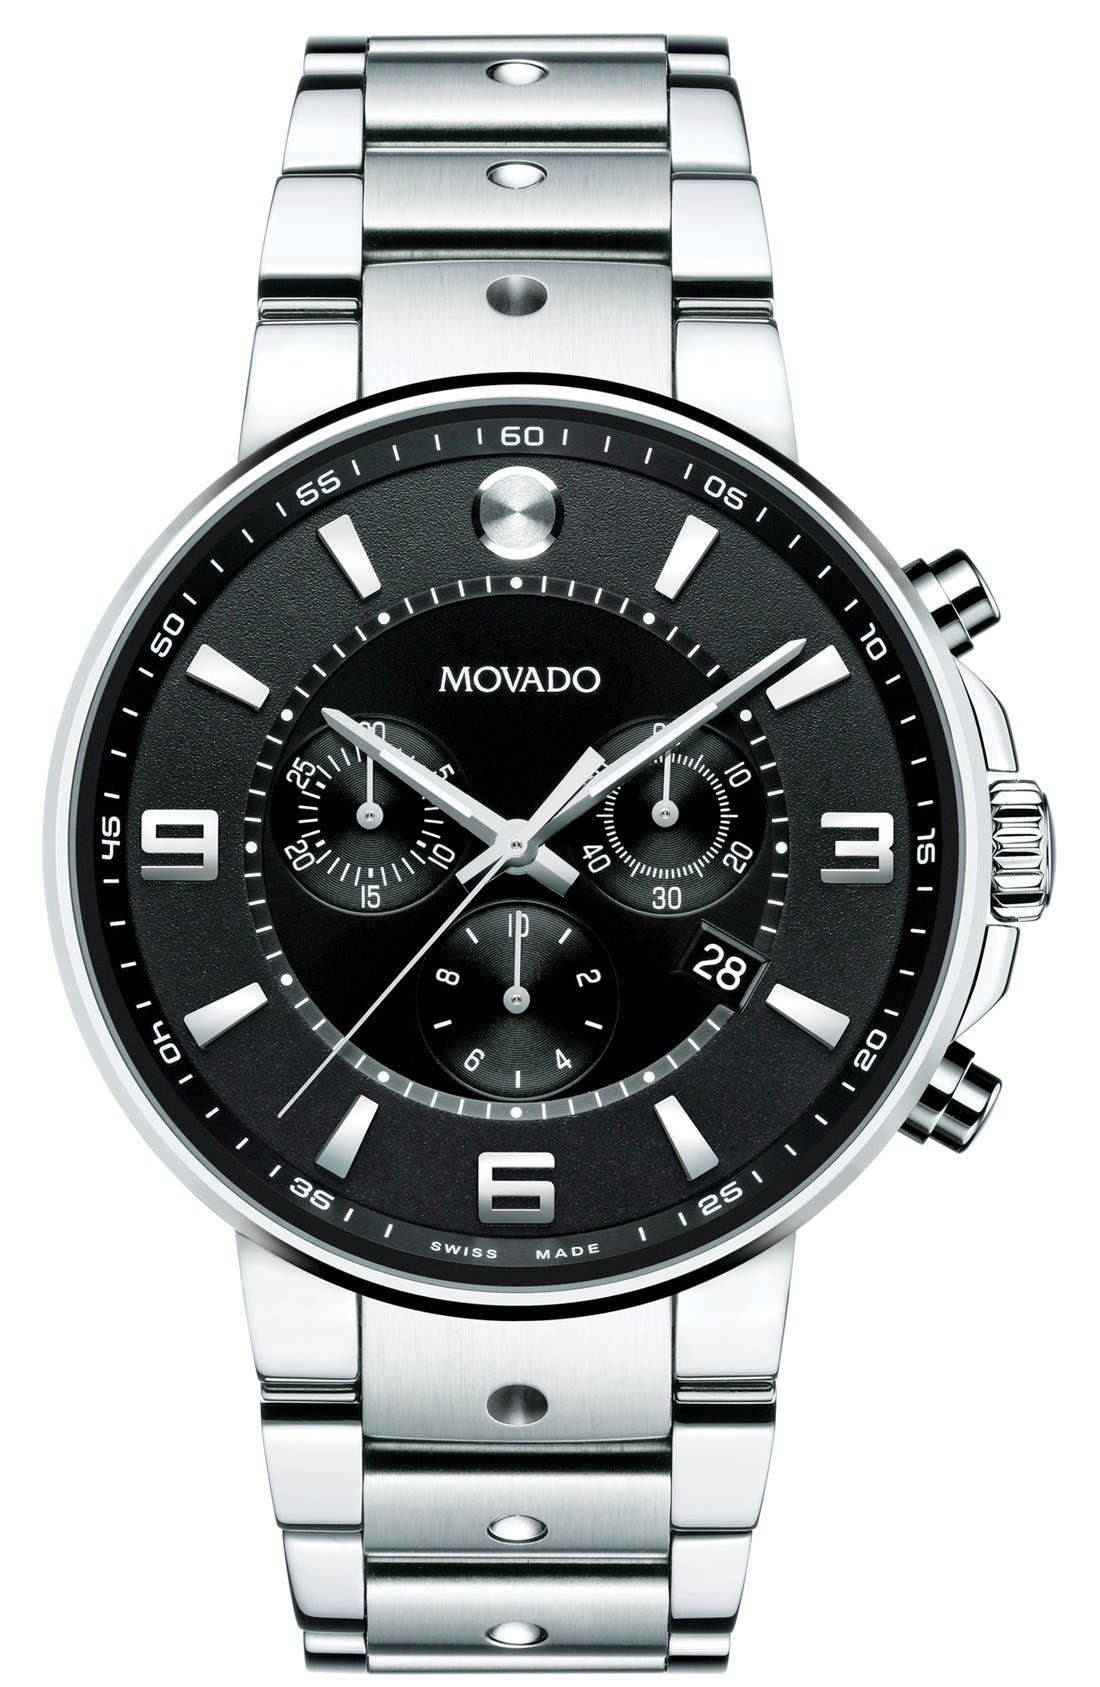 Main Image - Movado 'S.E. Pilot' Chronograph Bracelet Watch, 42mm